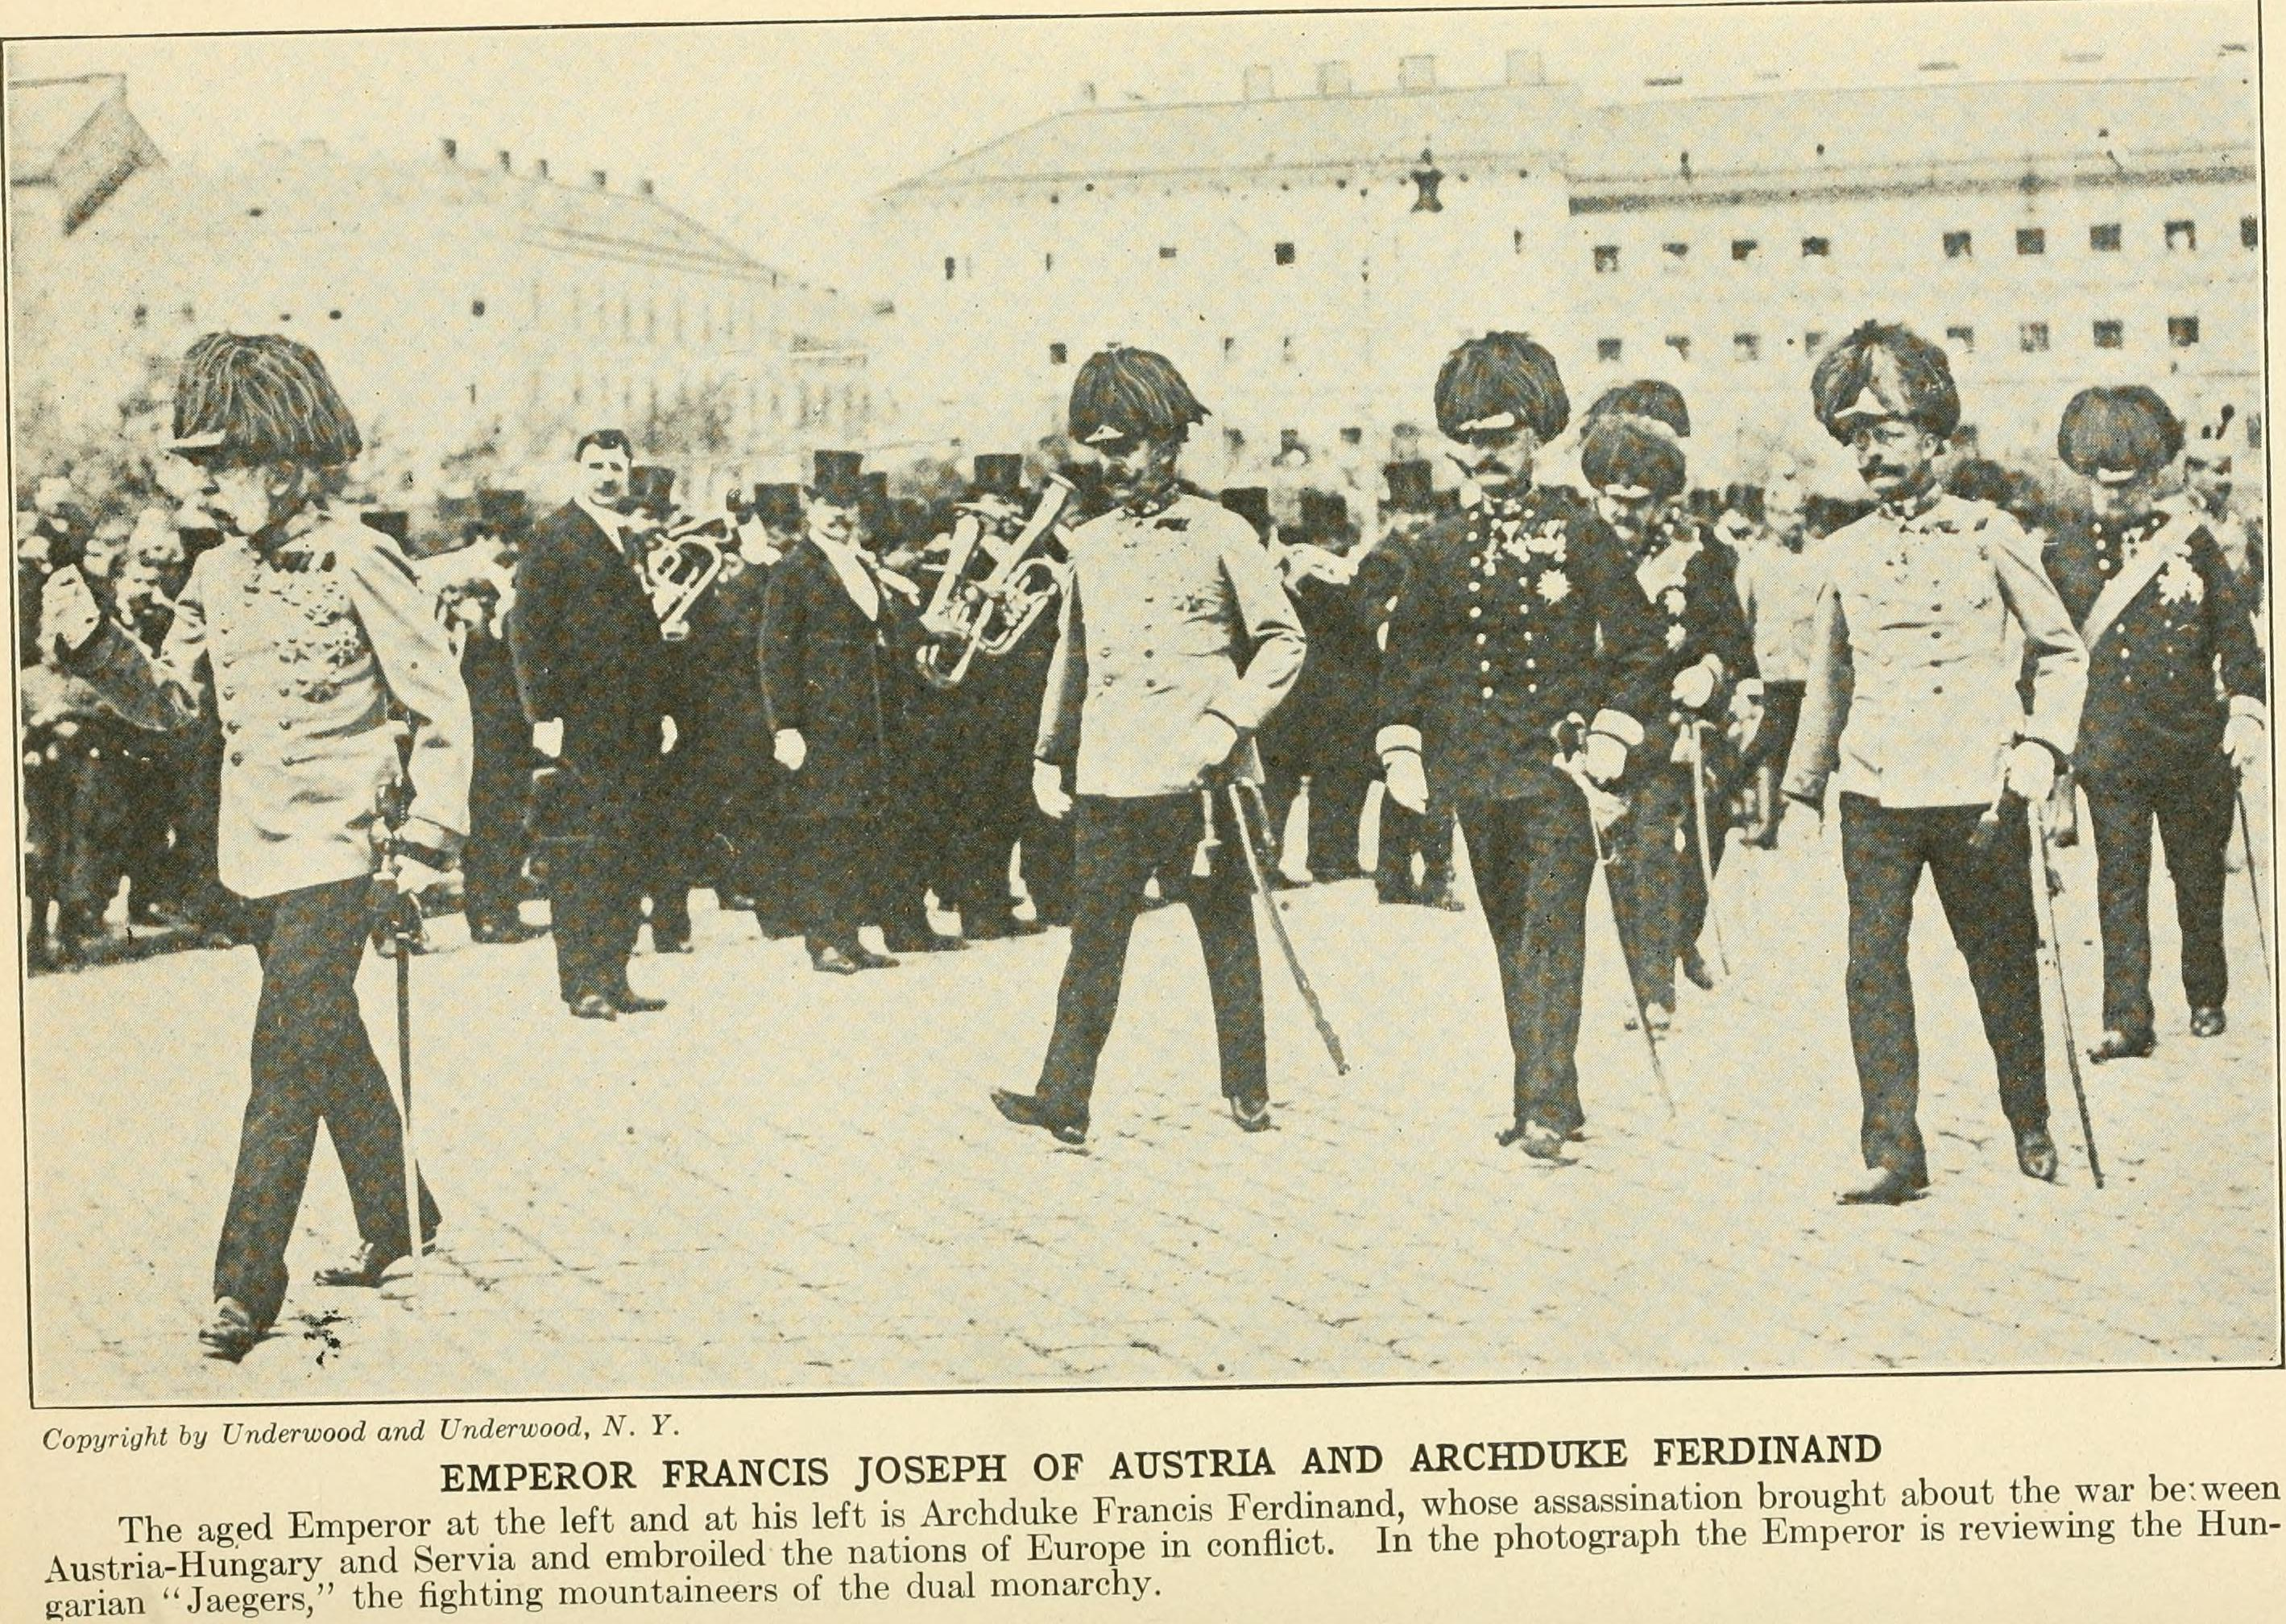 a biography of franz ferdinand the archduke of austria Here are some interesting facts about the archduke franz ferdinand archduke franz ferdinand was a hungarian prince, a bohemian prince and an austrian archduke he was the heir to the throne of austria-hungary from 1896 until his death.